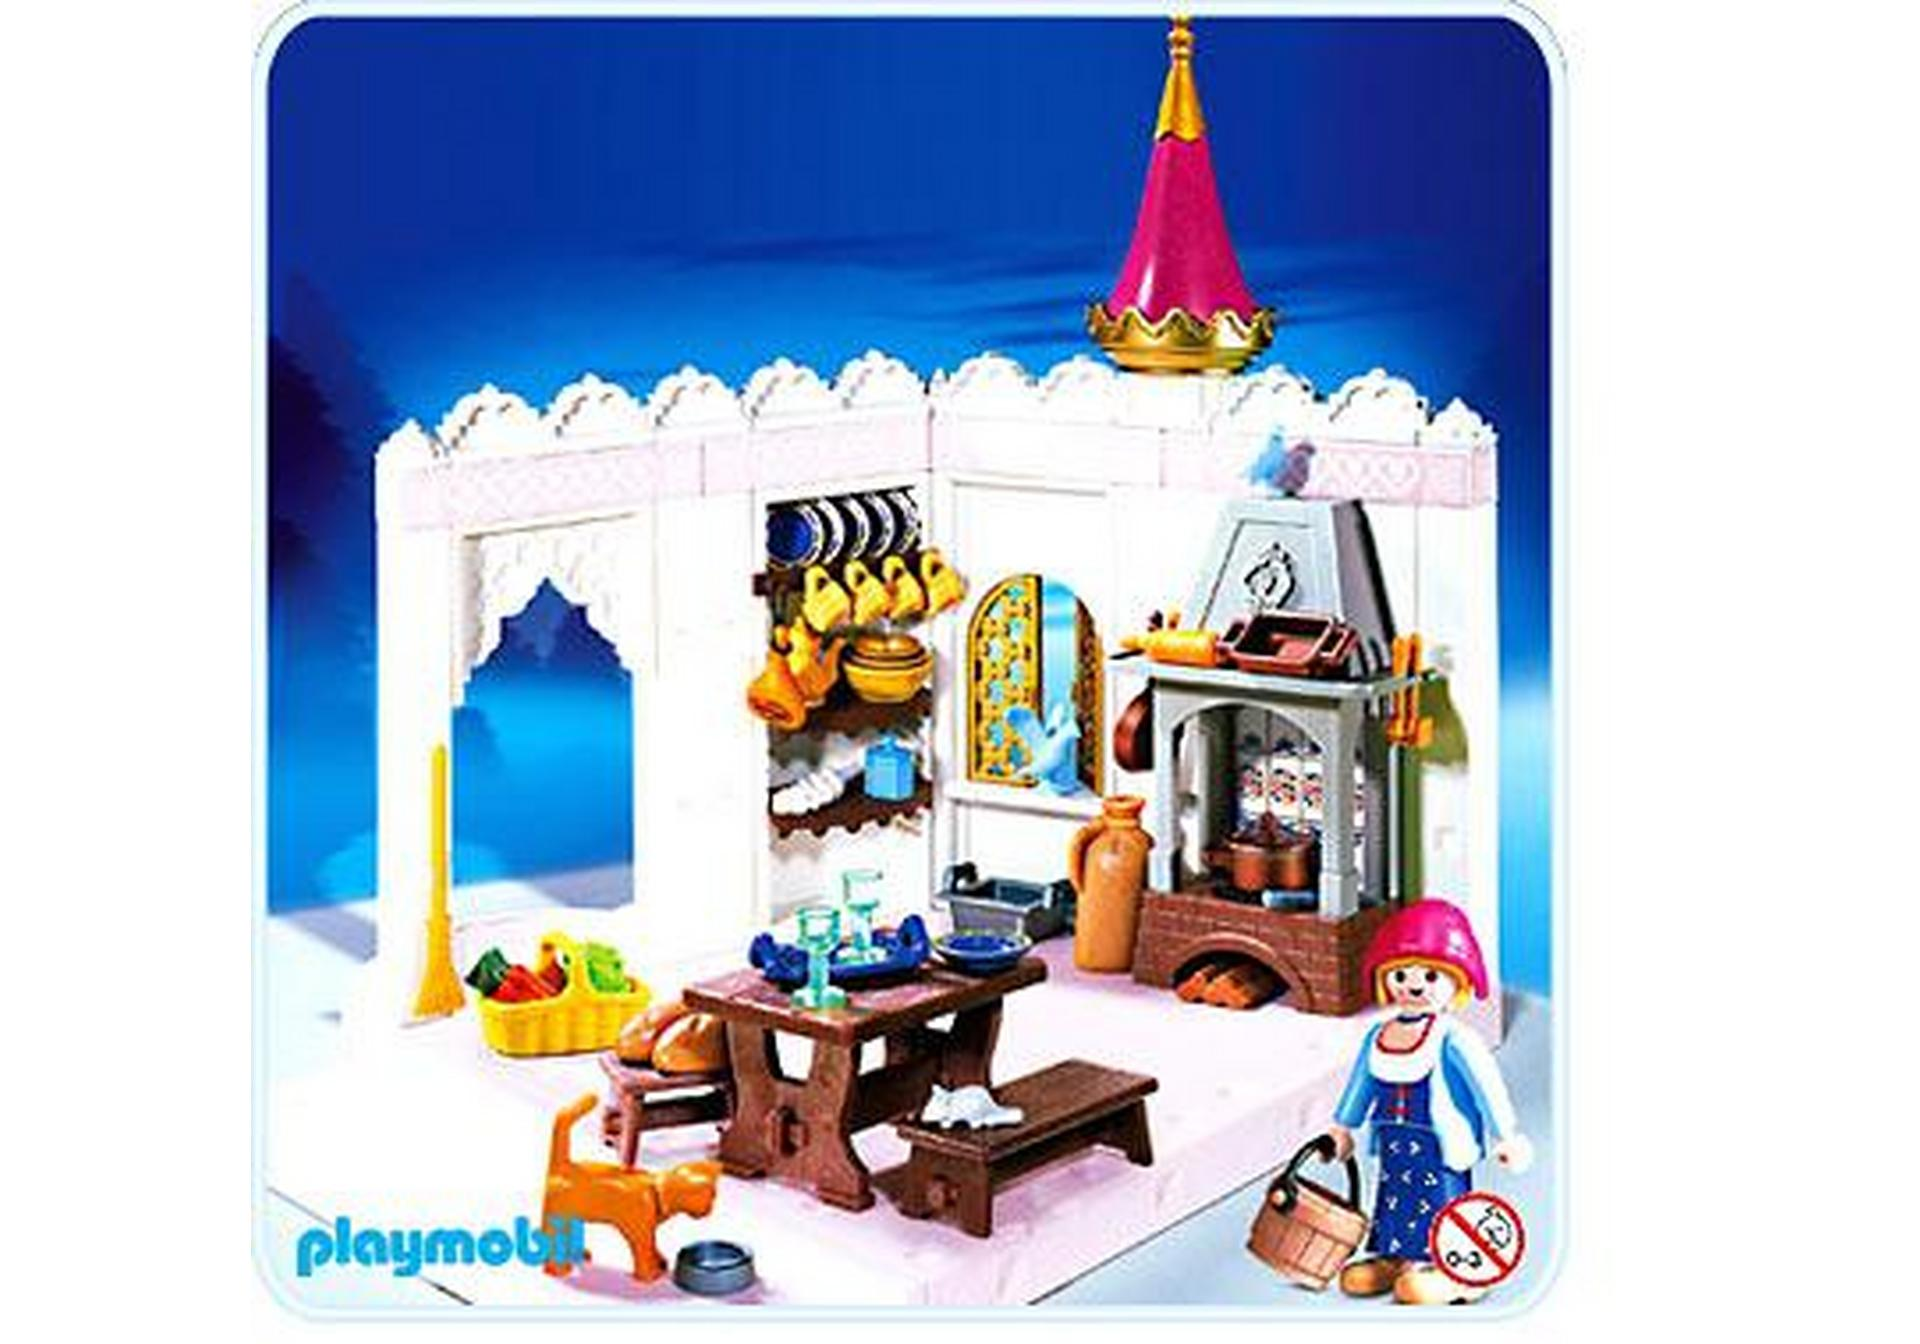 schlossk che 4251 a playmobil deutschland. Black Bedroom Furniture Sets. Home Design Ideas